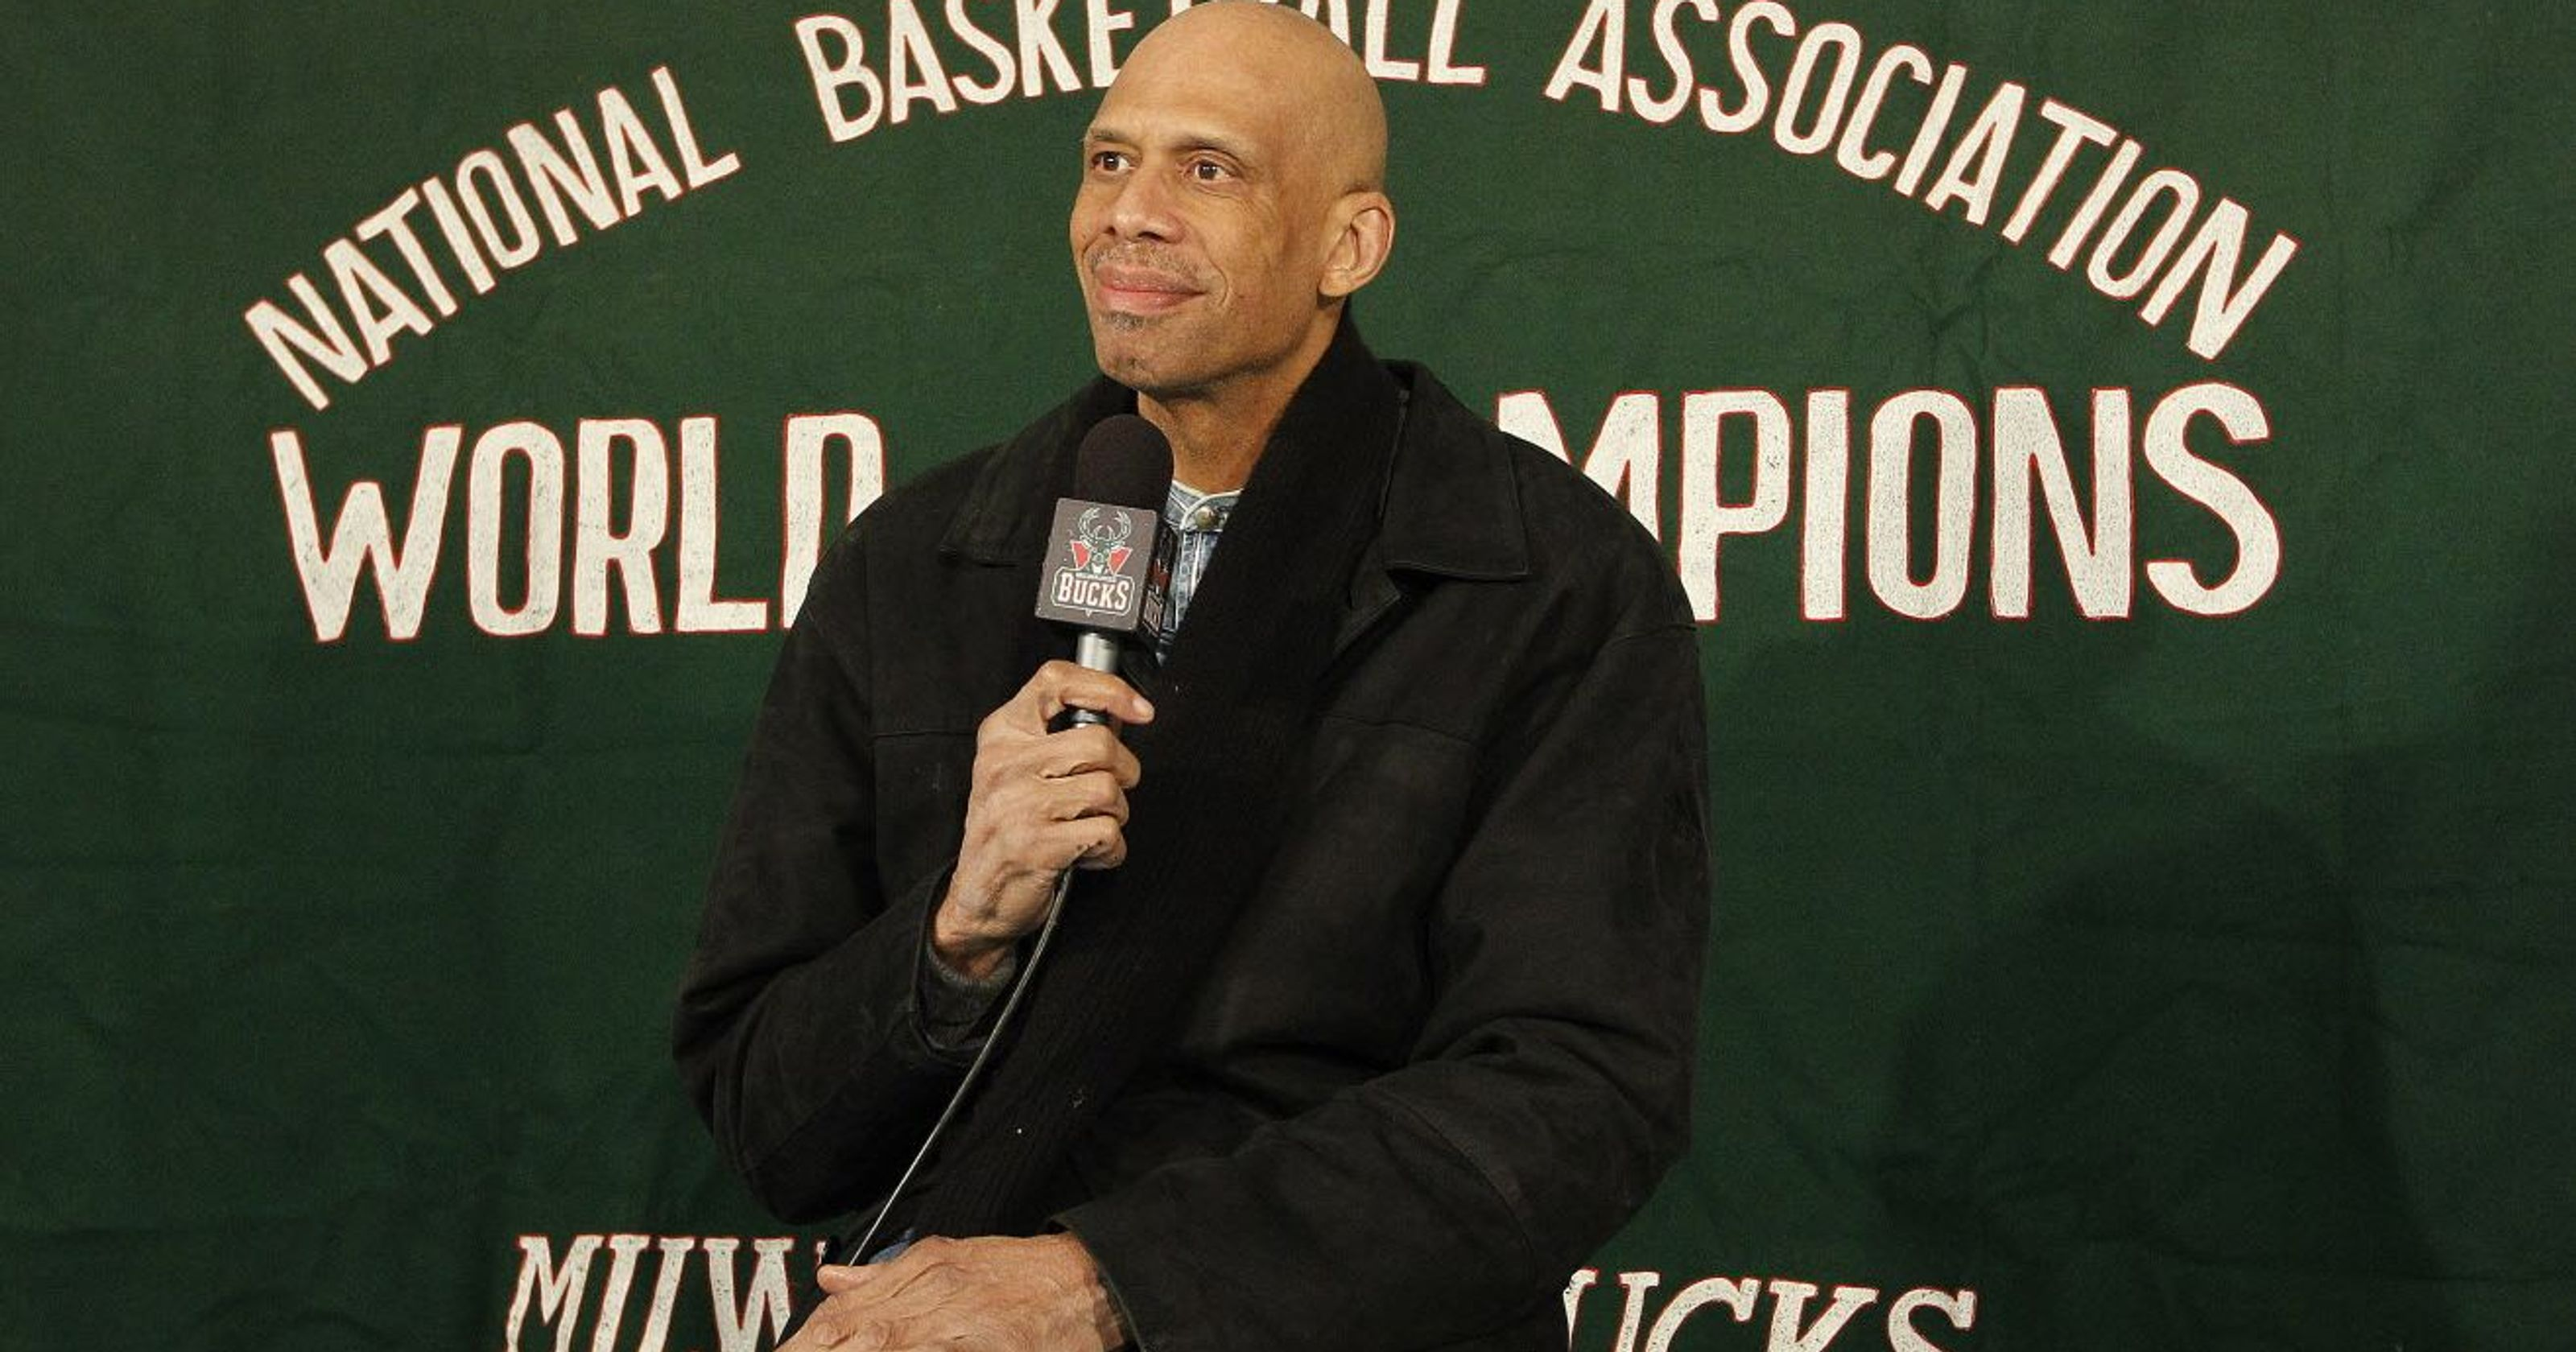 Kareem Abdul-Jabbar, a retired National Basketball Association Hall of Fame player, has long spoken out on social issues. (Milwaukee Journal Sentinel)